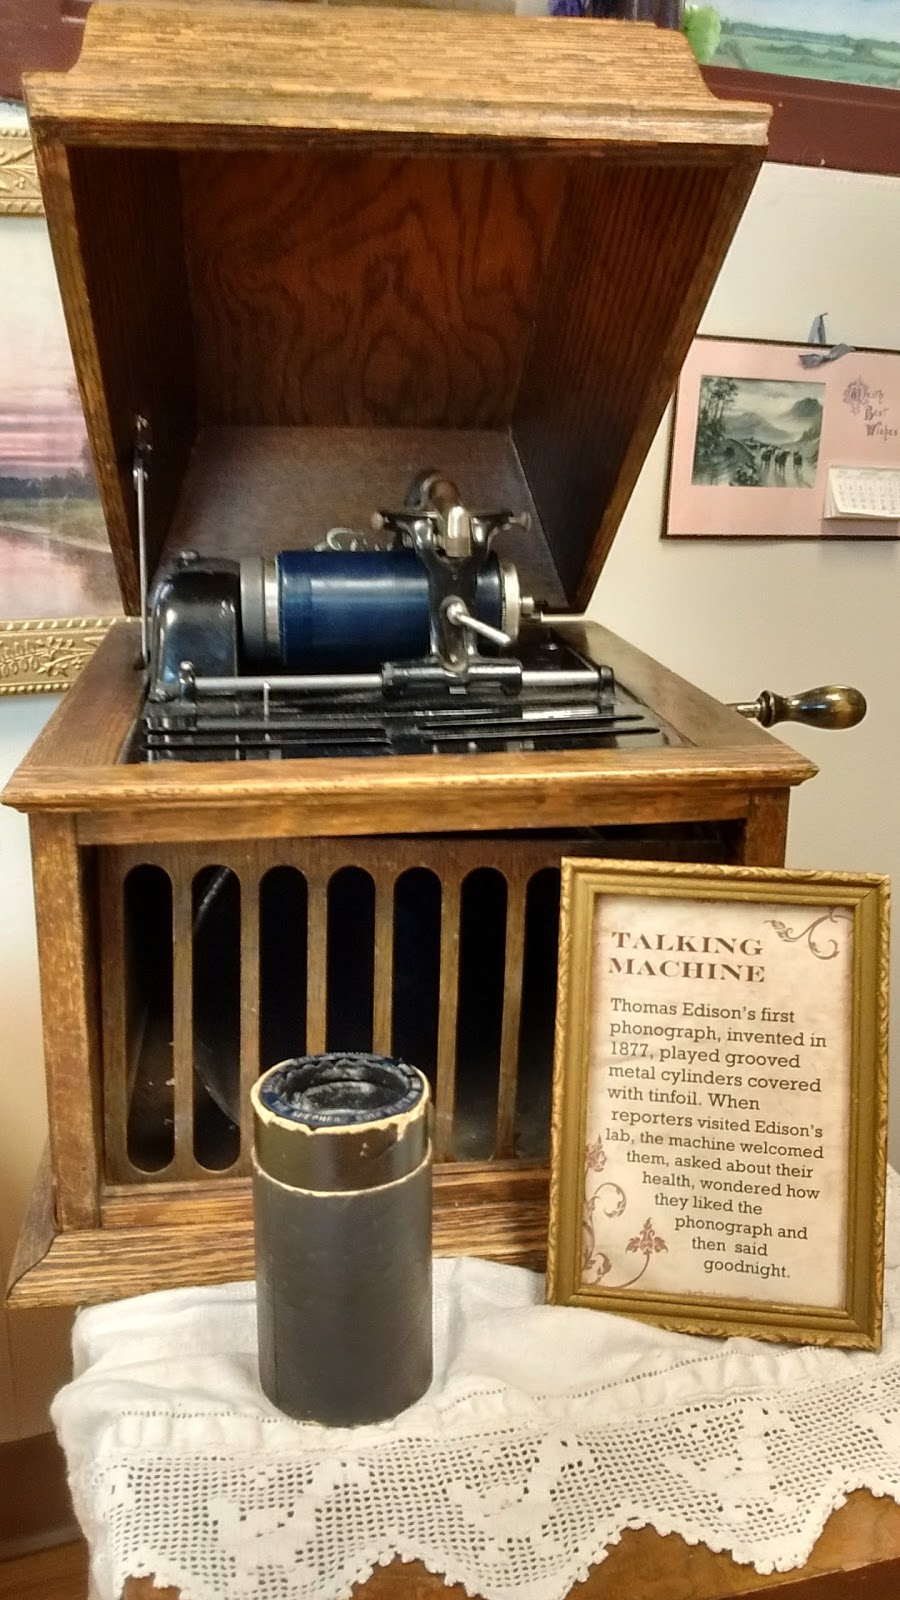 Strathcona County Museum & Archives | museum | 913 Ash St, Sherwood Park, AB T8A 2G3, Canada | 7804678189 OR +1 780-467-8189